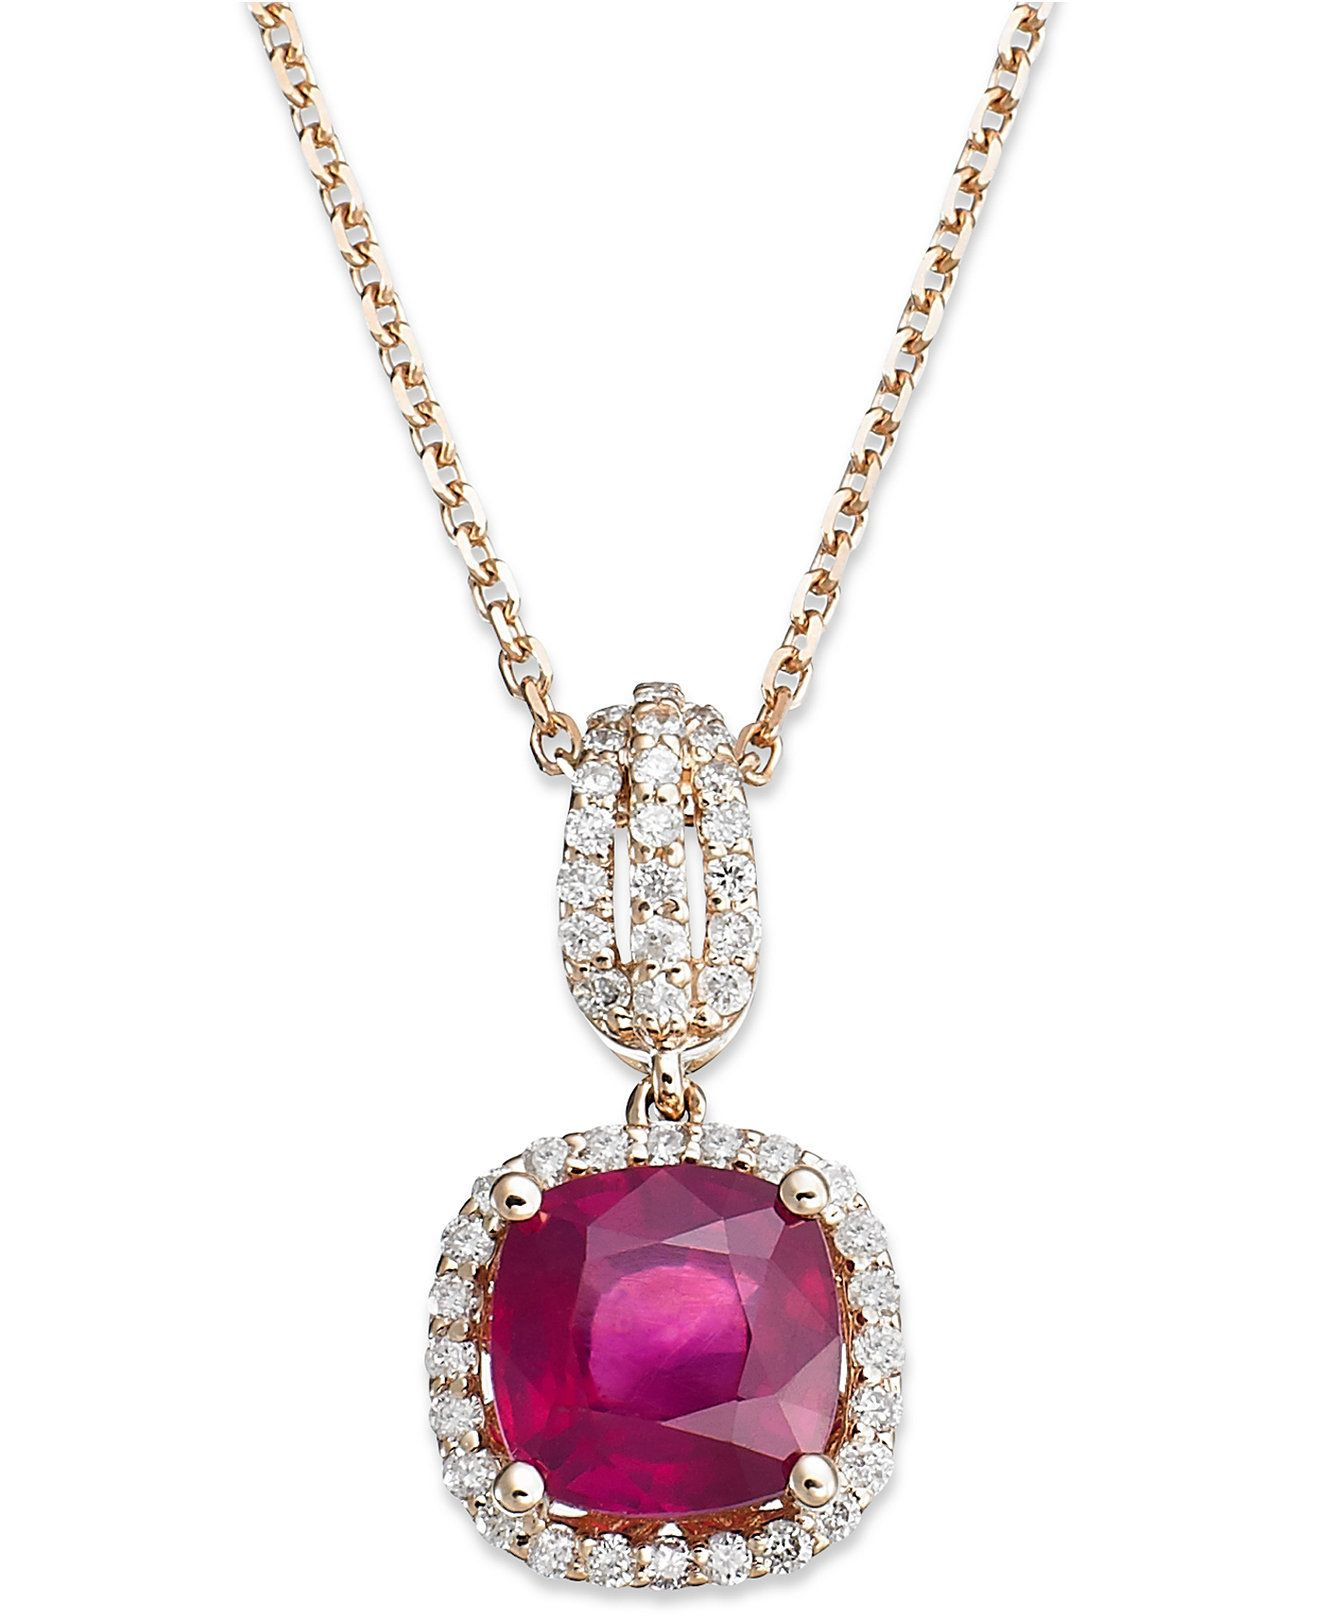 K rose gold necklace ruby ct tw and diamond ct